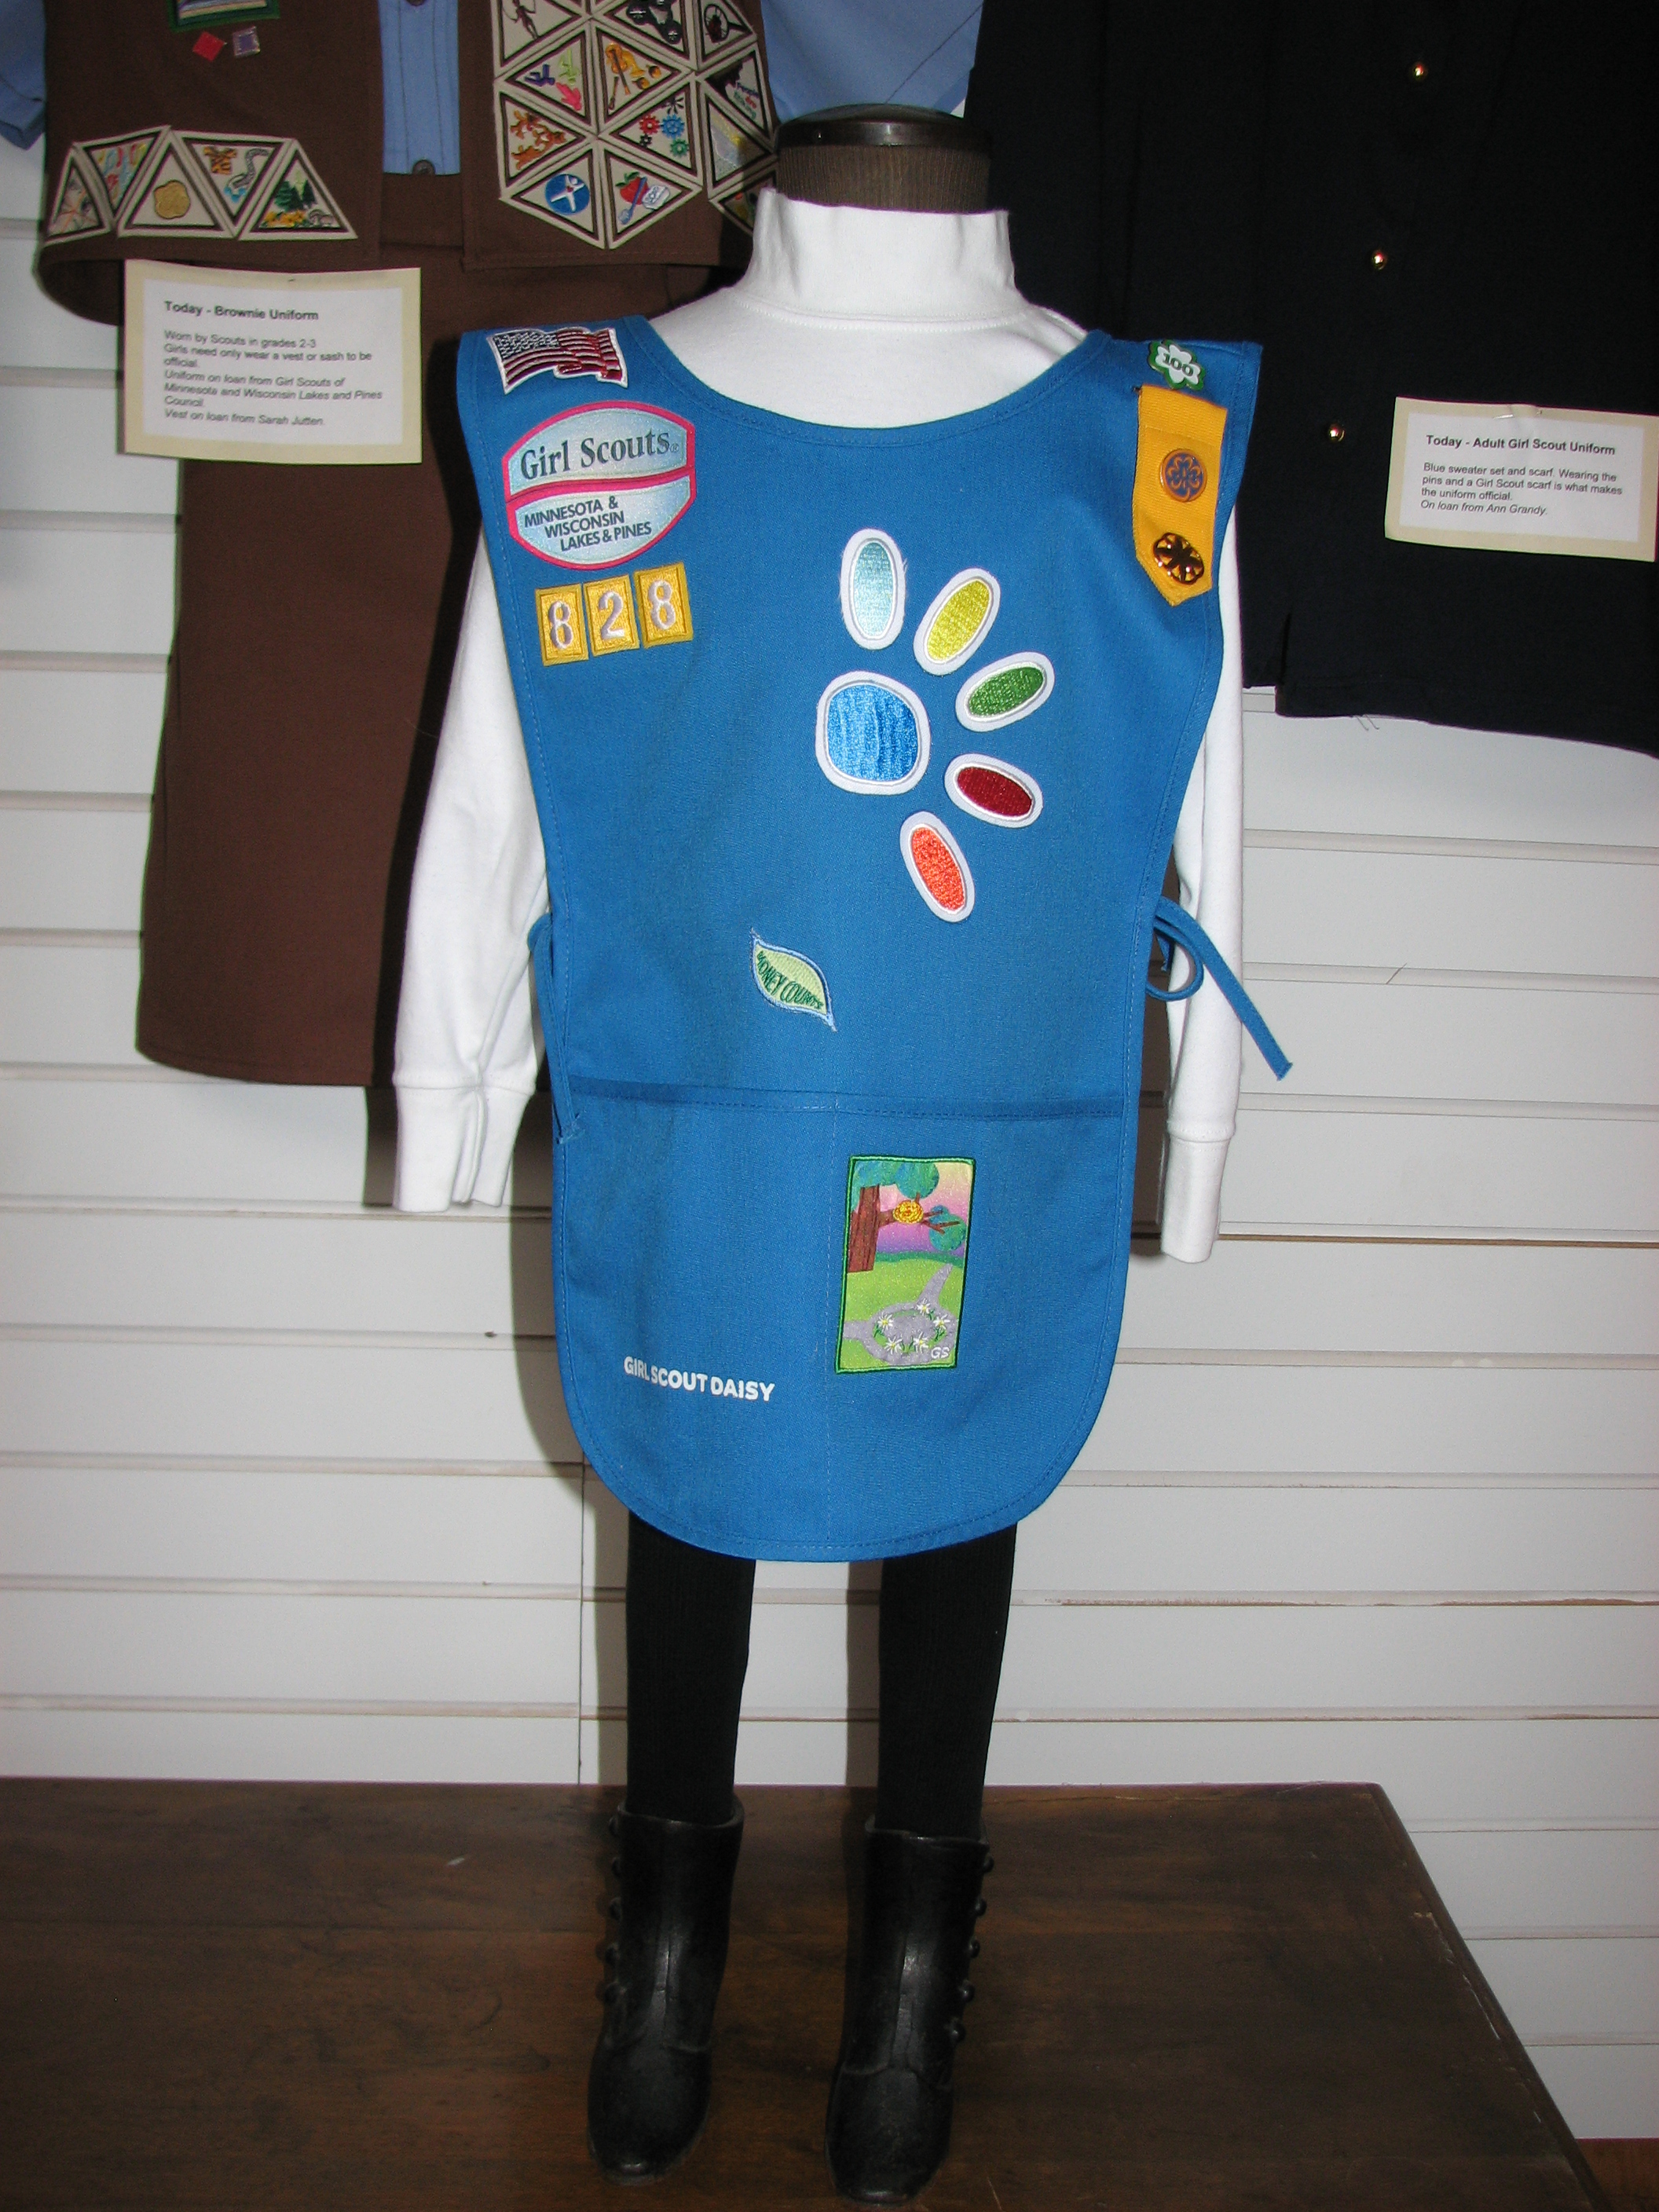 daisy tunic diagram states of matter change 2018  girl scout images brownie insignia